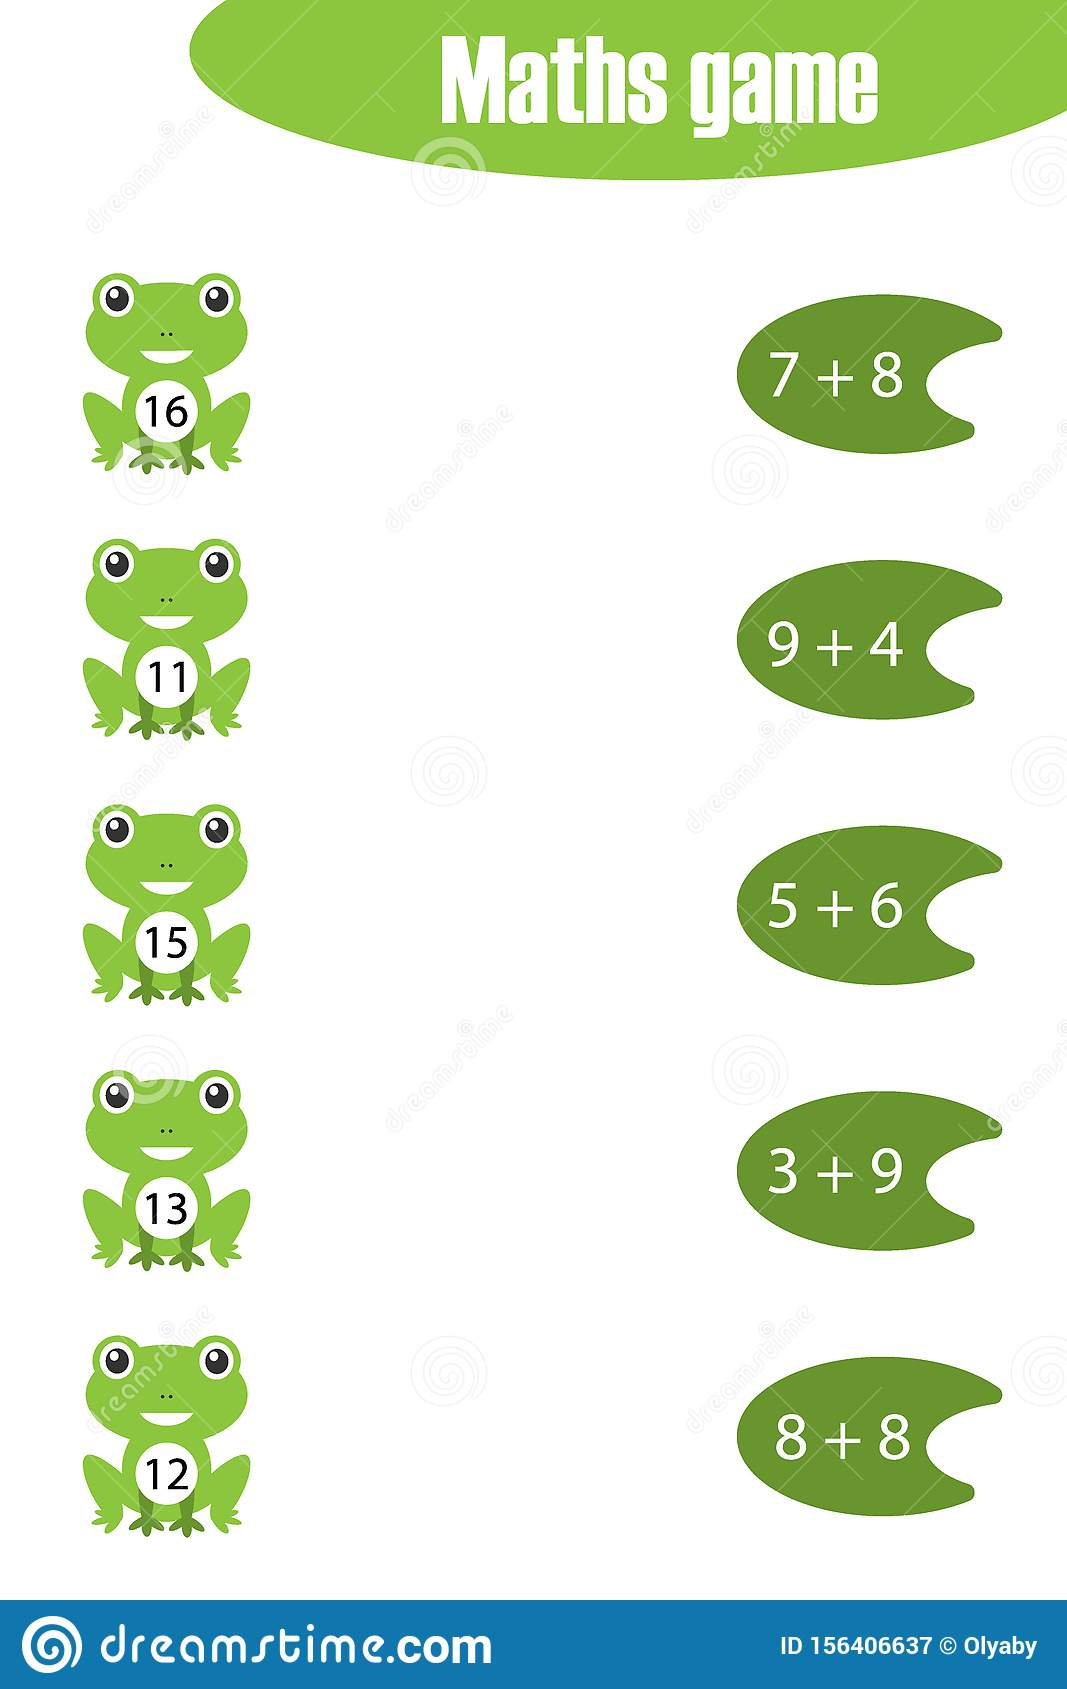 Maths Game With Pictures Of Pond Life For Children Easy